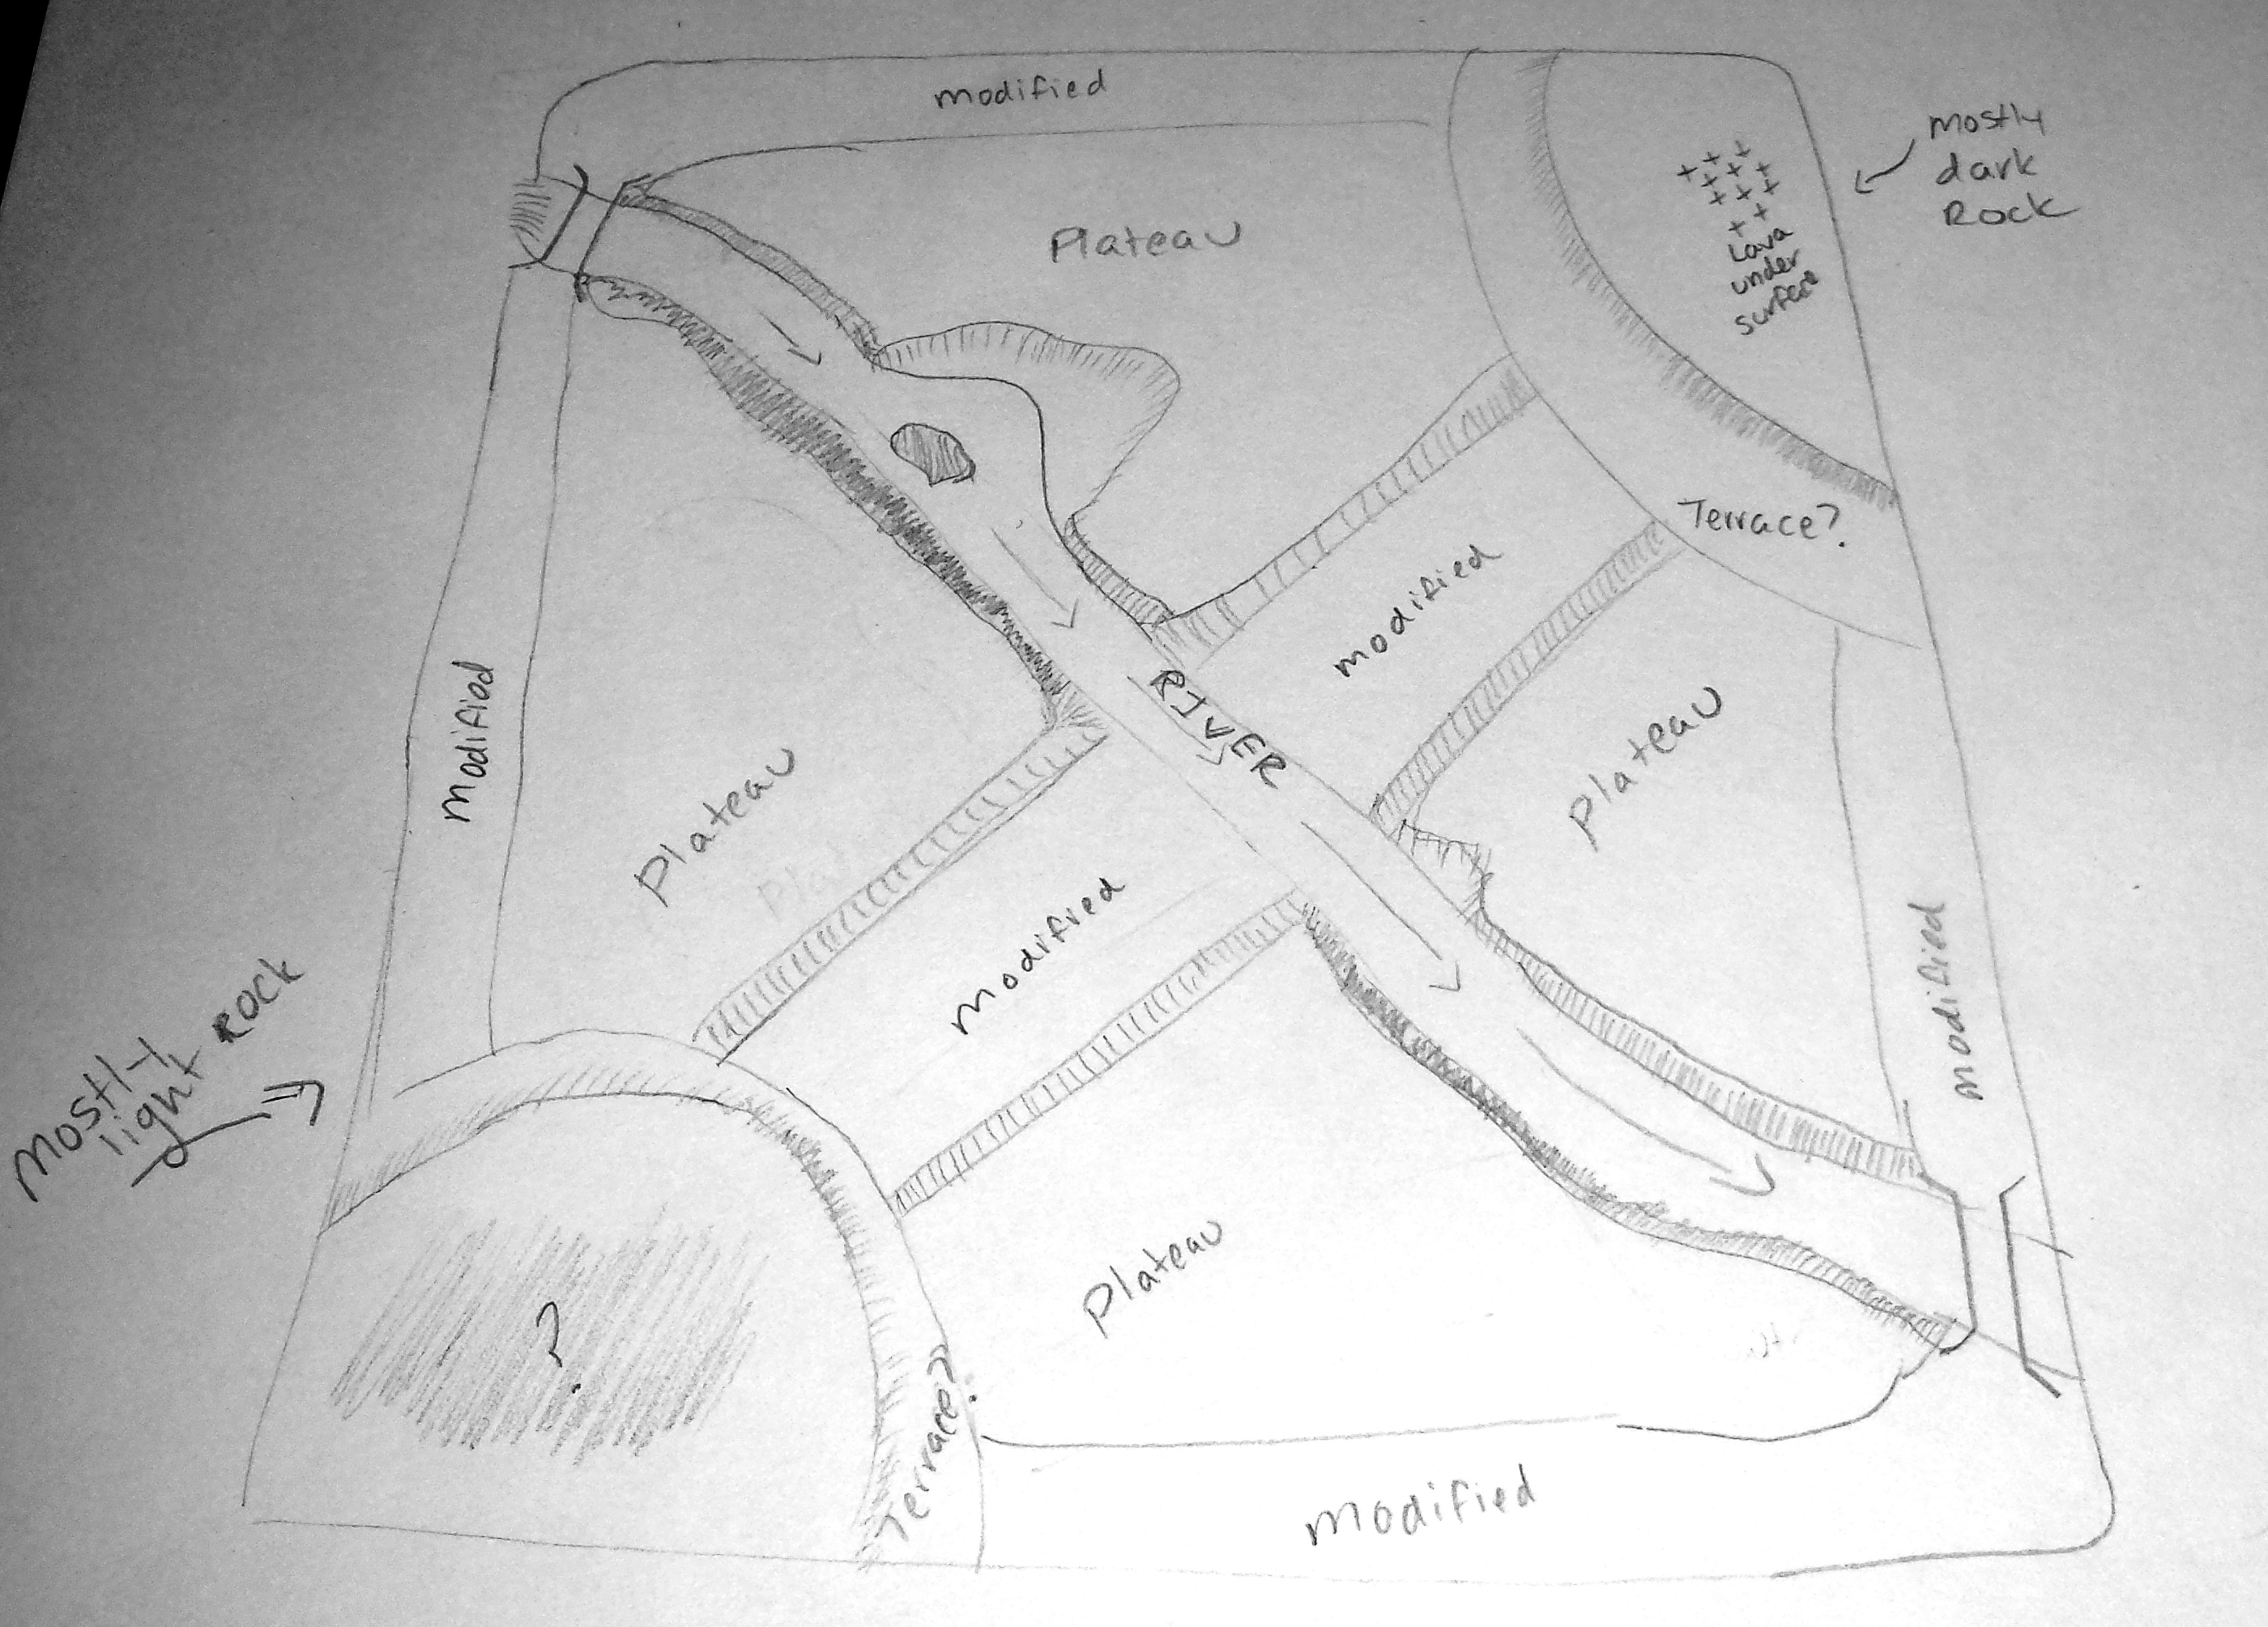 A geologist's sketch of the Dota 2 map.